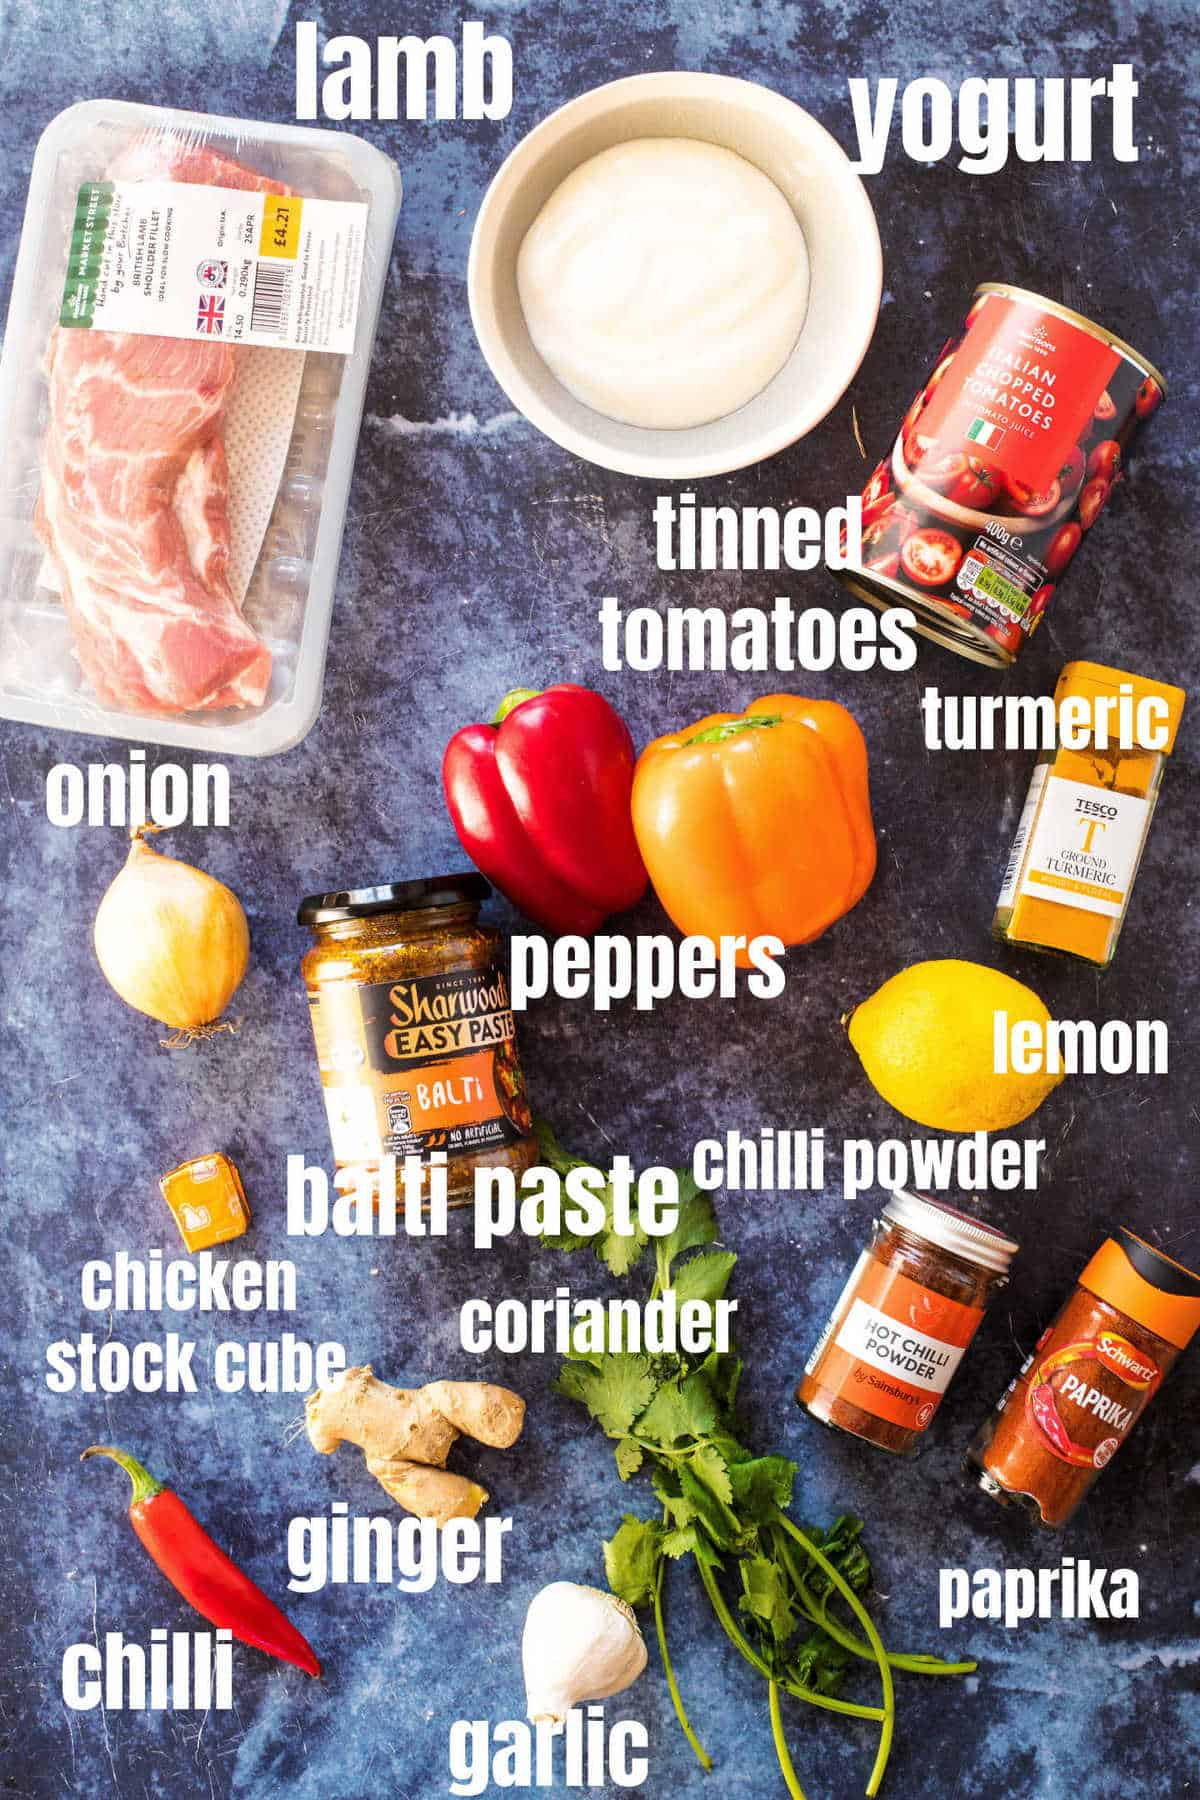 Ingredients need for the lamb balti.